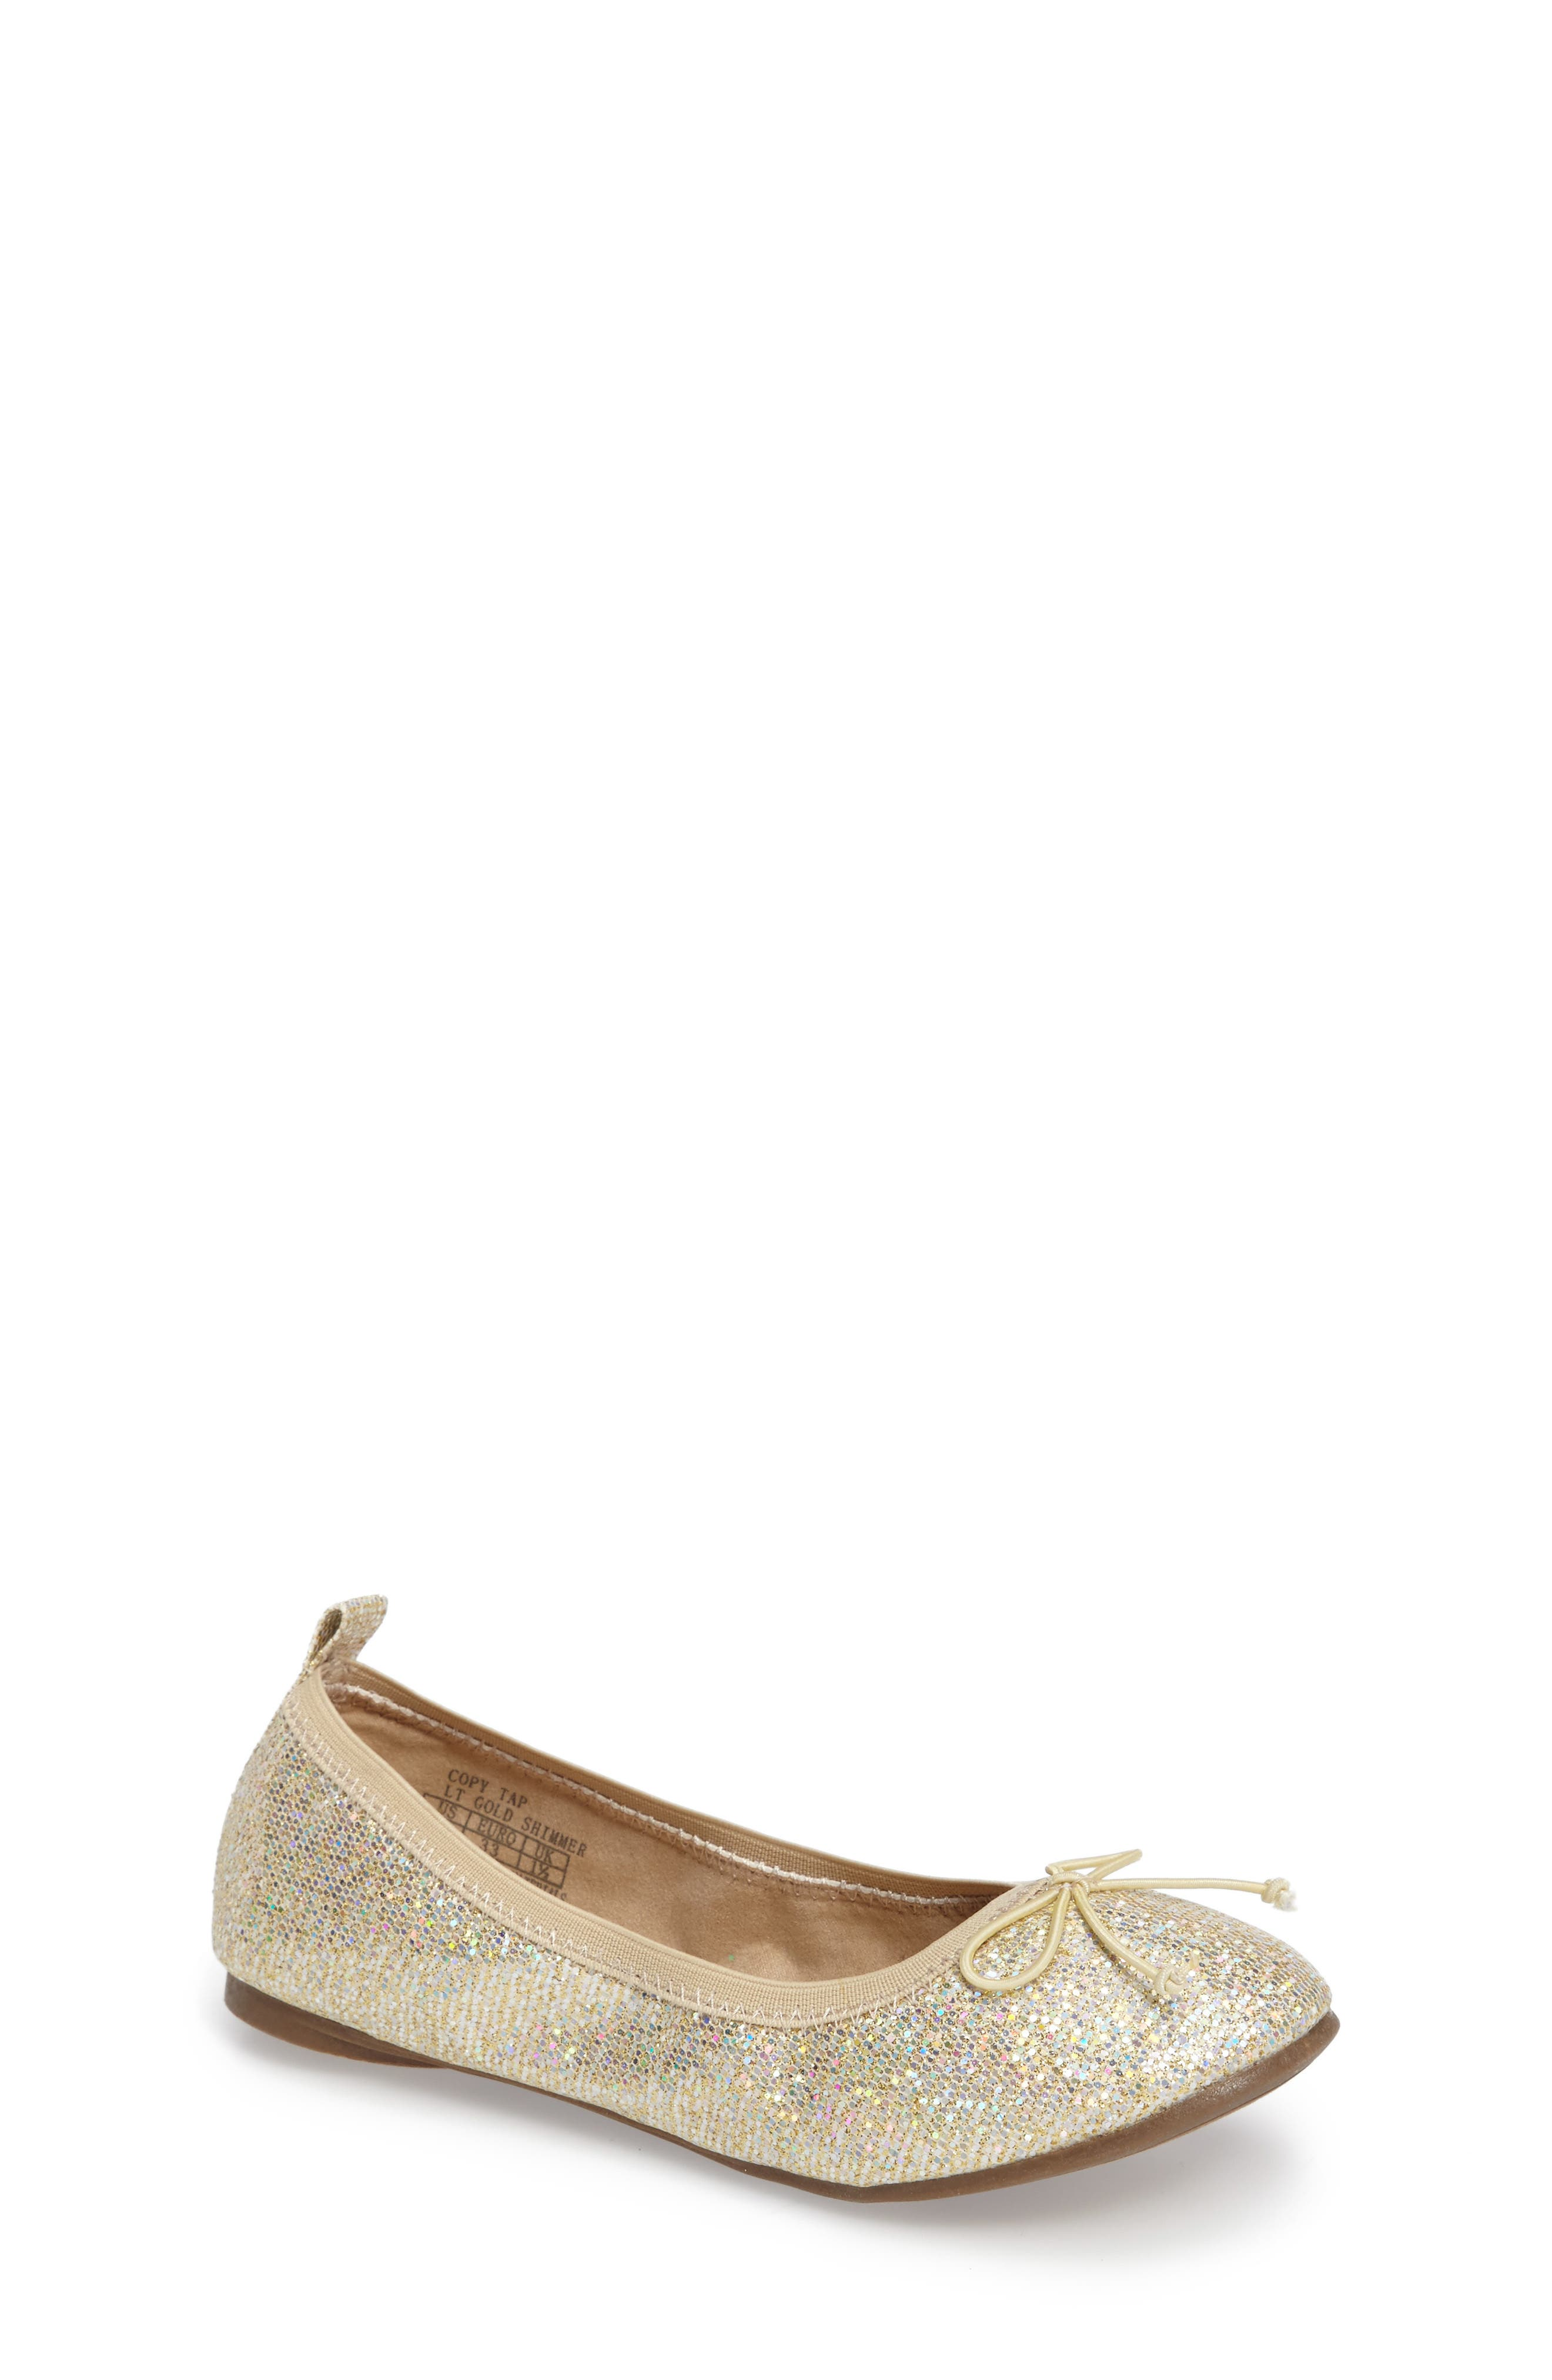 REACTION KENNETH COLE, Copy Tap Shimmer Ballet Flat, Main thumbnail 1, color, LIGHT GOLD SHIMMER